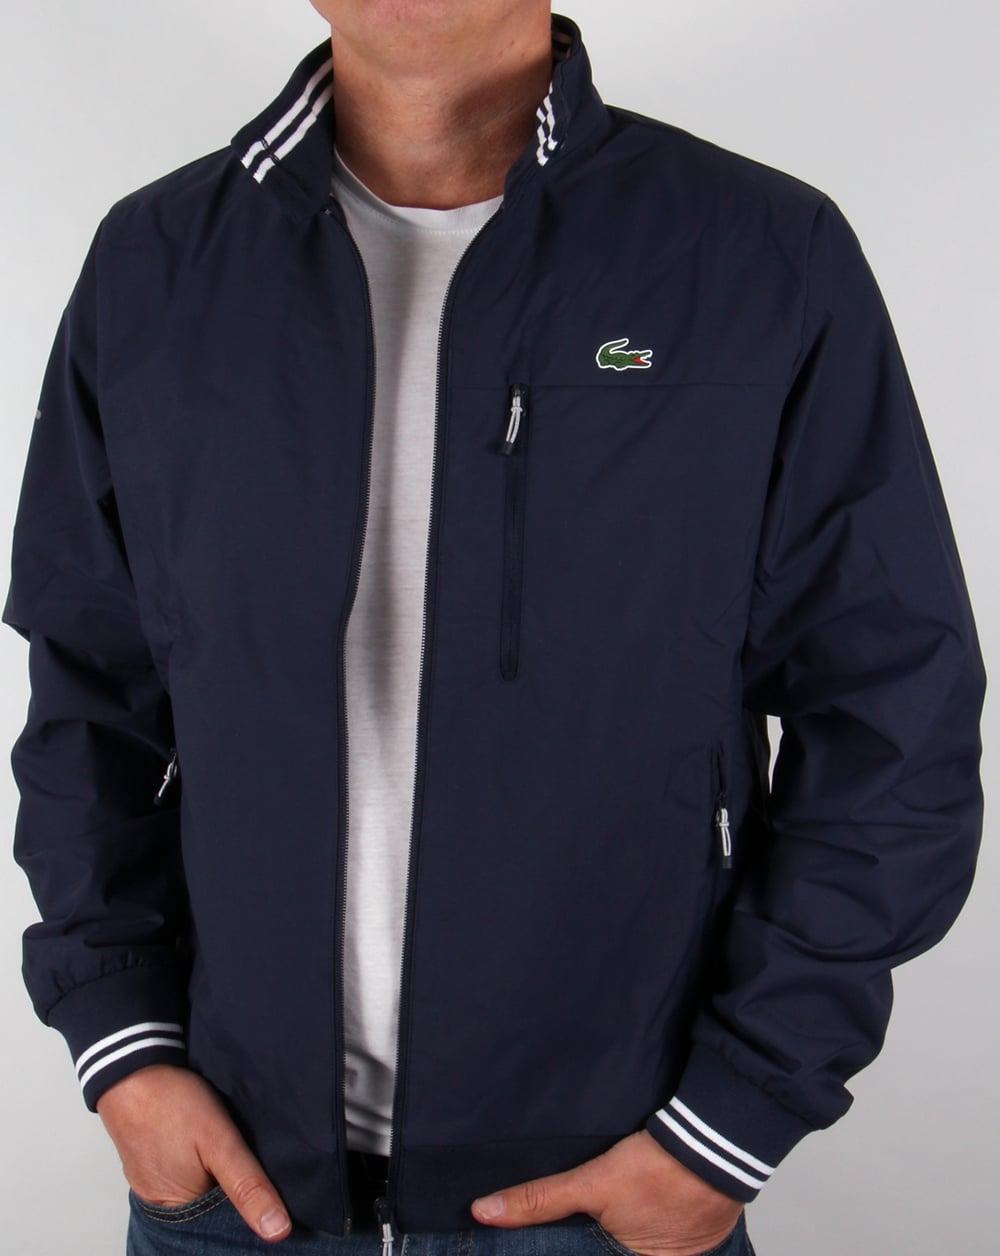 8b3a77f53f Lacoste Golf Jacket Navy